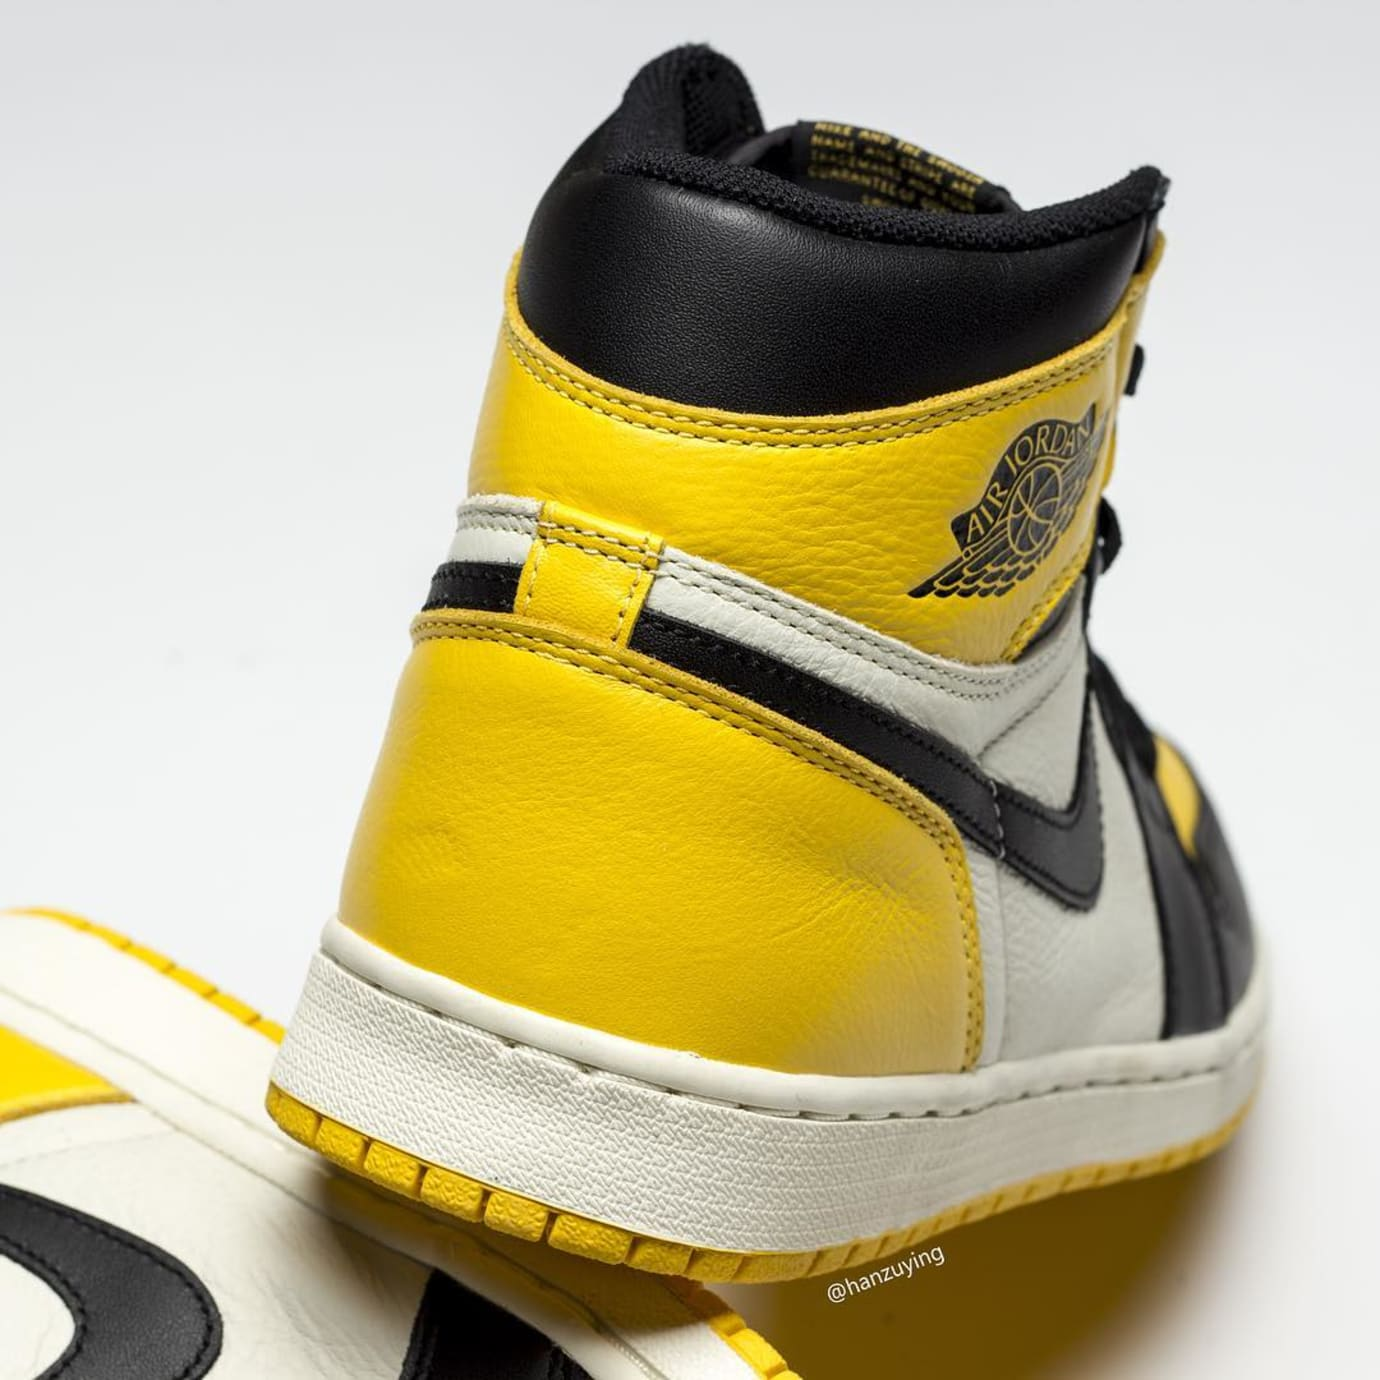 Air Jordan 1 Retro High OG 'Yellow Toe' AR1020-700 Heel